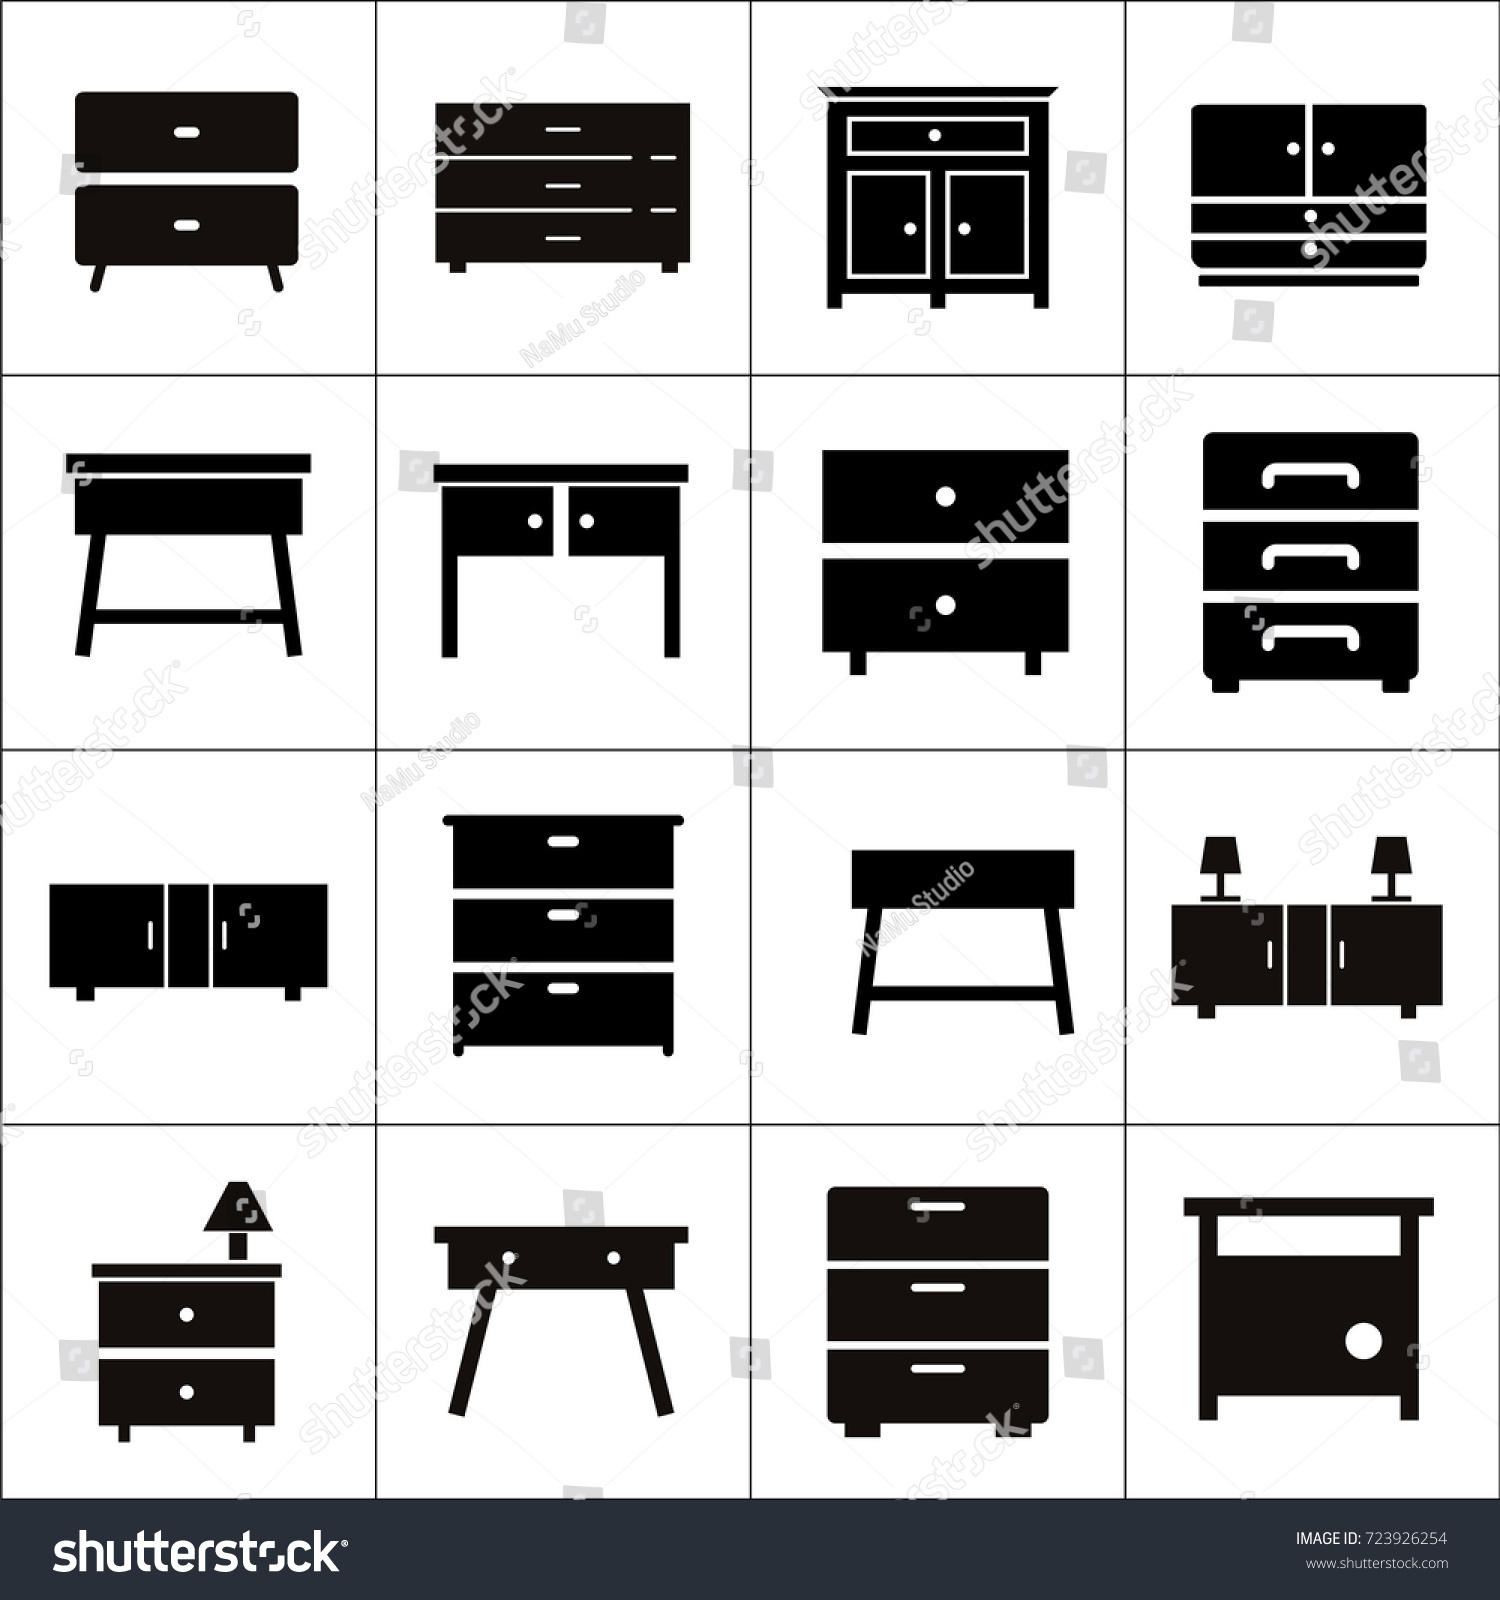 Chest Drawers Vector Icon Furniture Types Stock Vector Royalty Free